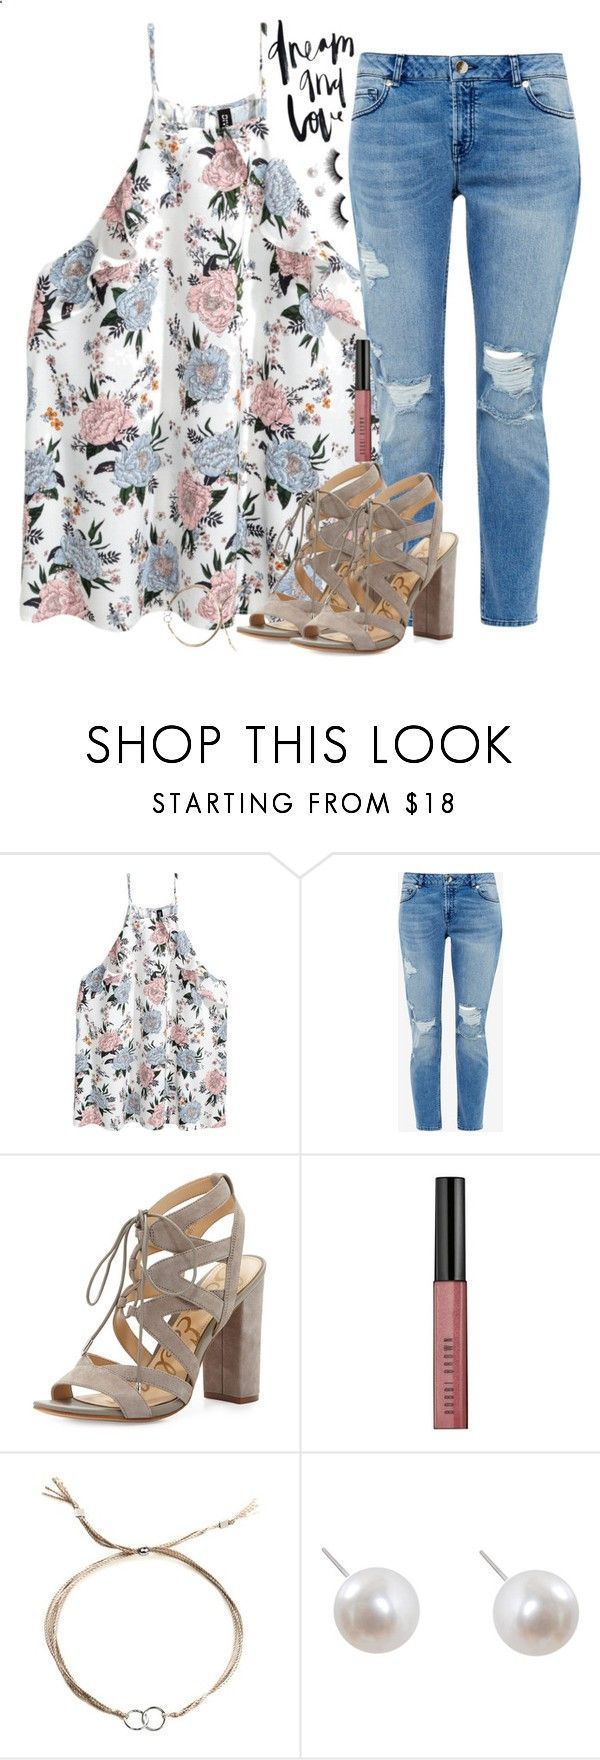 Sandals Summer Yeah I want summa by southernstruttin ❤ liked on Polyvore featuring Ted Baker, Sam Edelman, Bobbi Brown Cosmetics, Dogeared, Humble Chic and Urban Decay - There is nothing more comfortable and cool to wear on your feet during the heat season than some flat sandals.